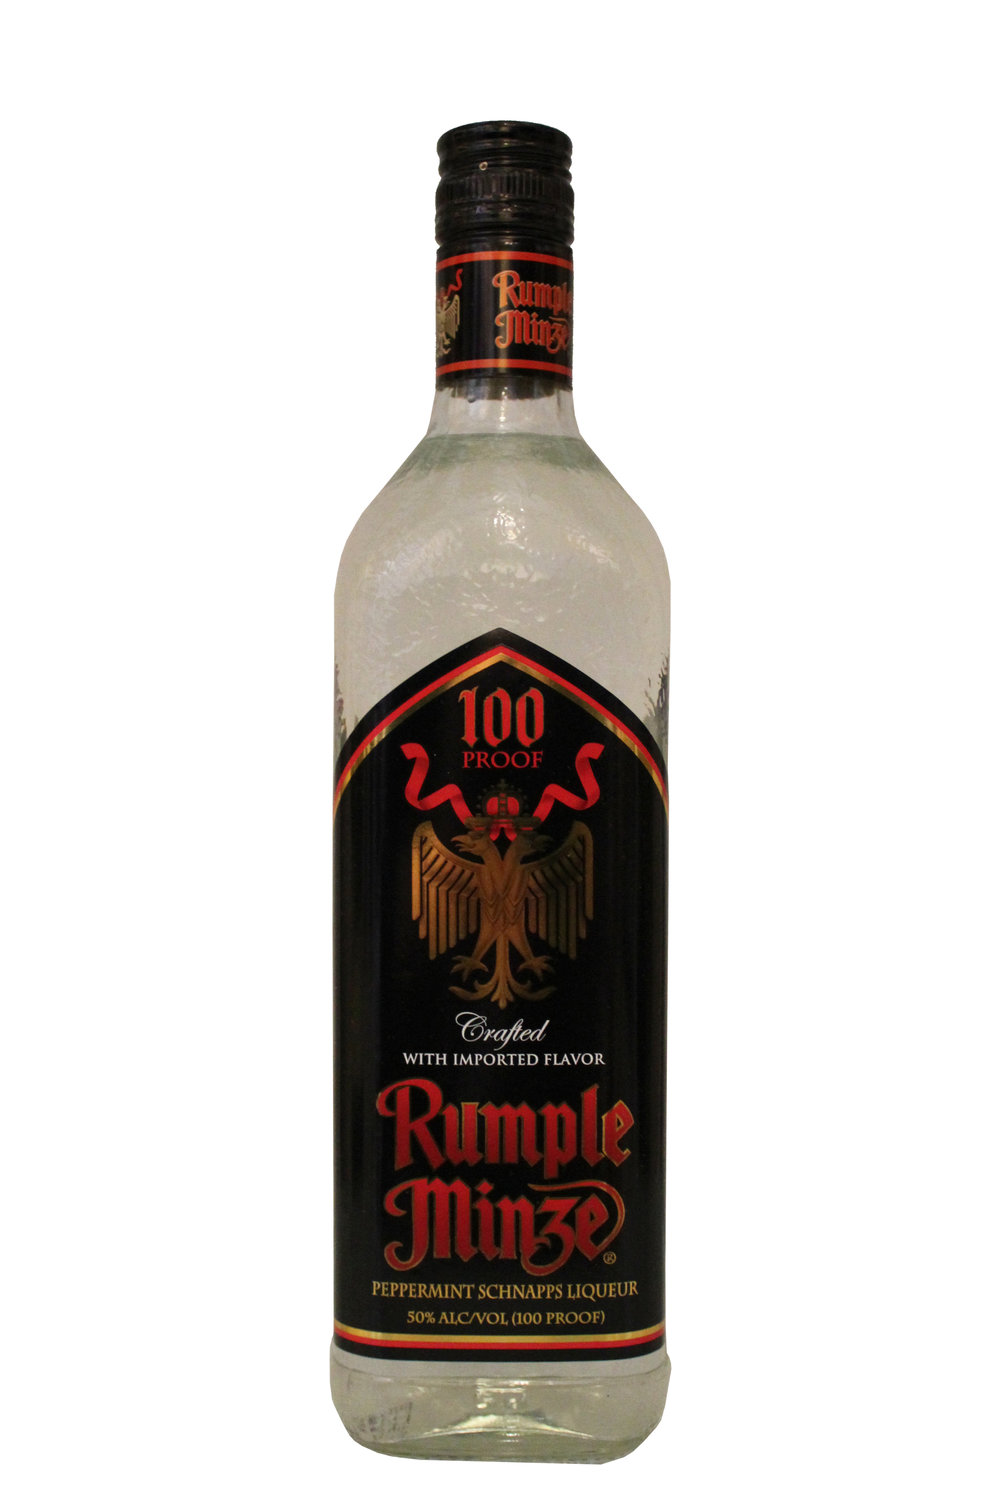 Peppermint Schnapps Liqueur  Rumple Minze,  London